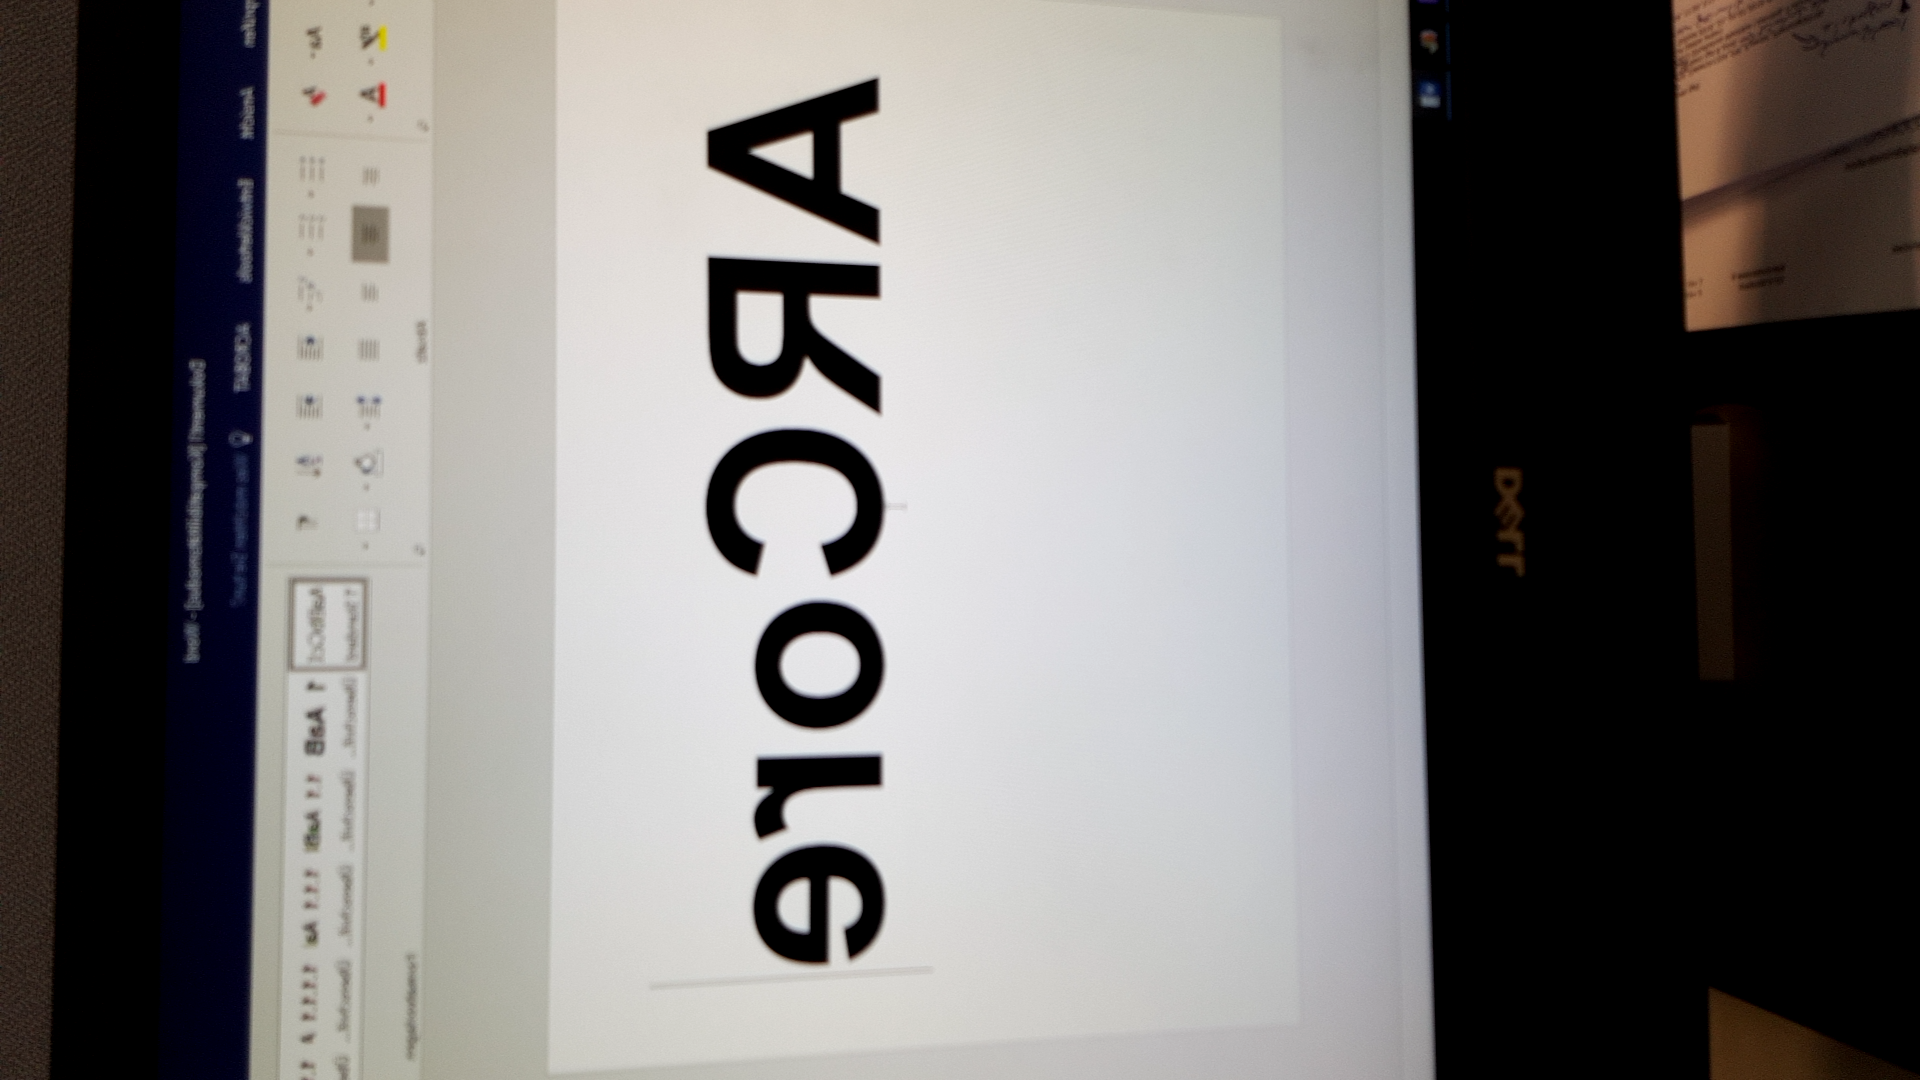 Camera Capture Image · Issue #221 · google-ar/arcore-unity